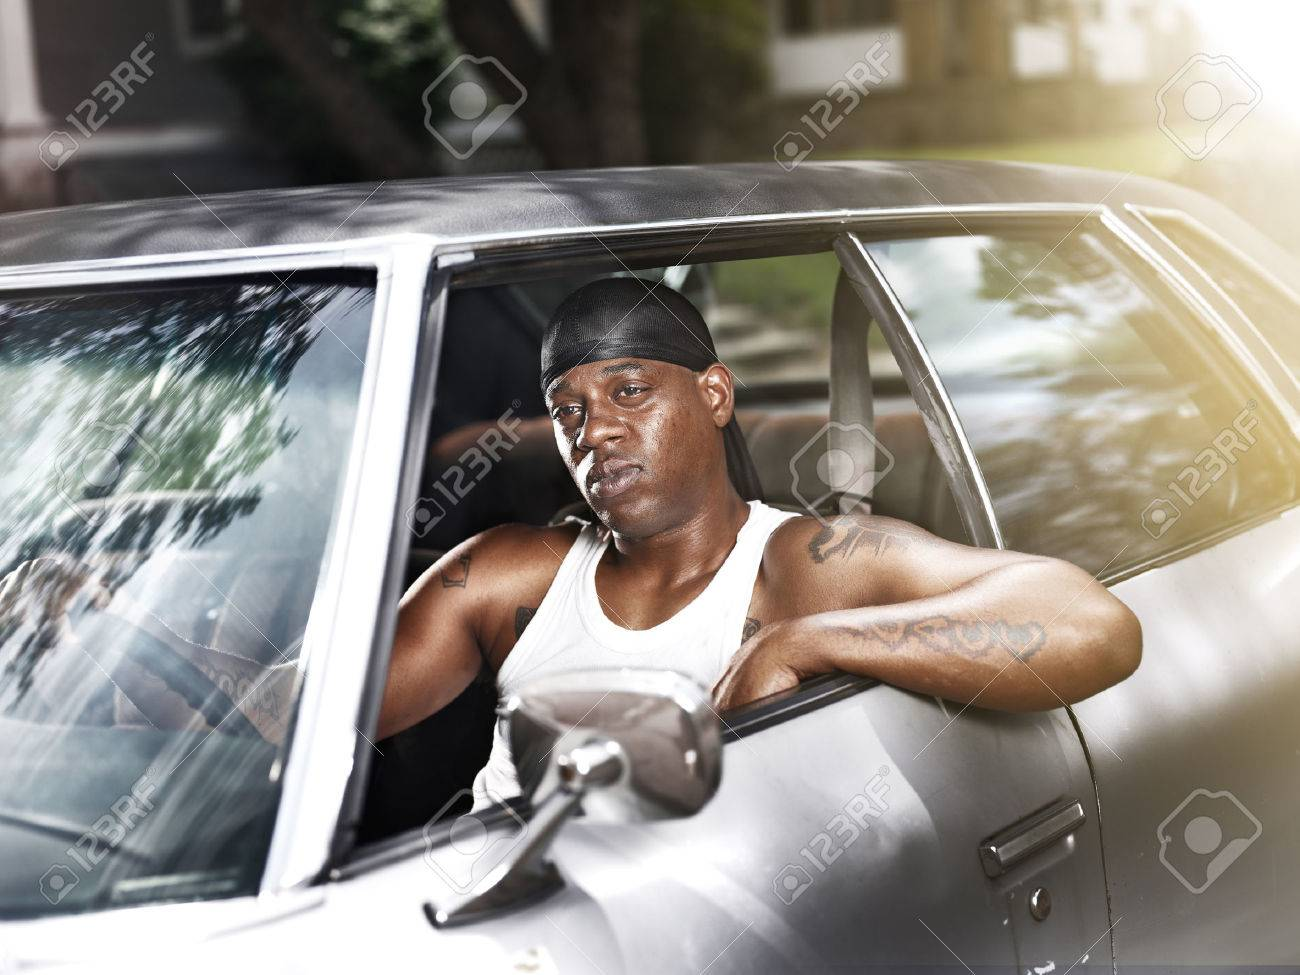 Cool African Man In Car Wearing Wife Beater And Dew Rag Stock Photo    26232346